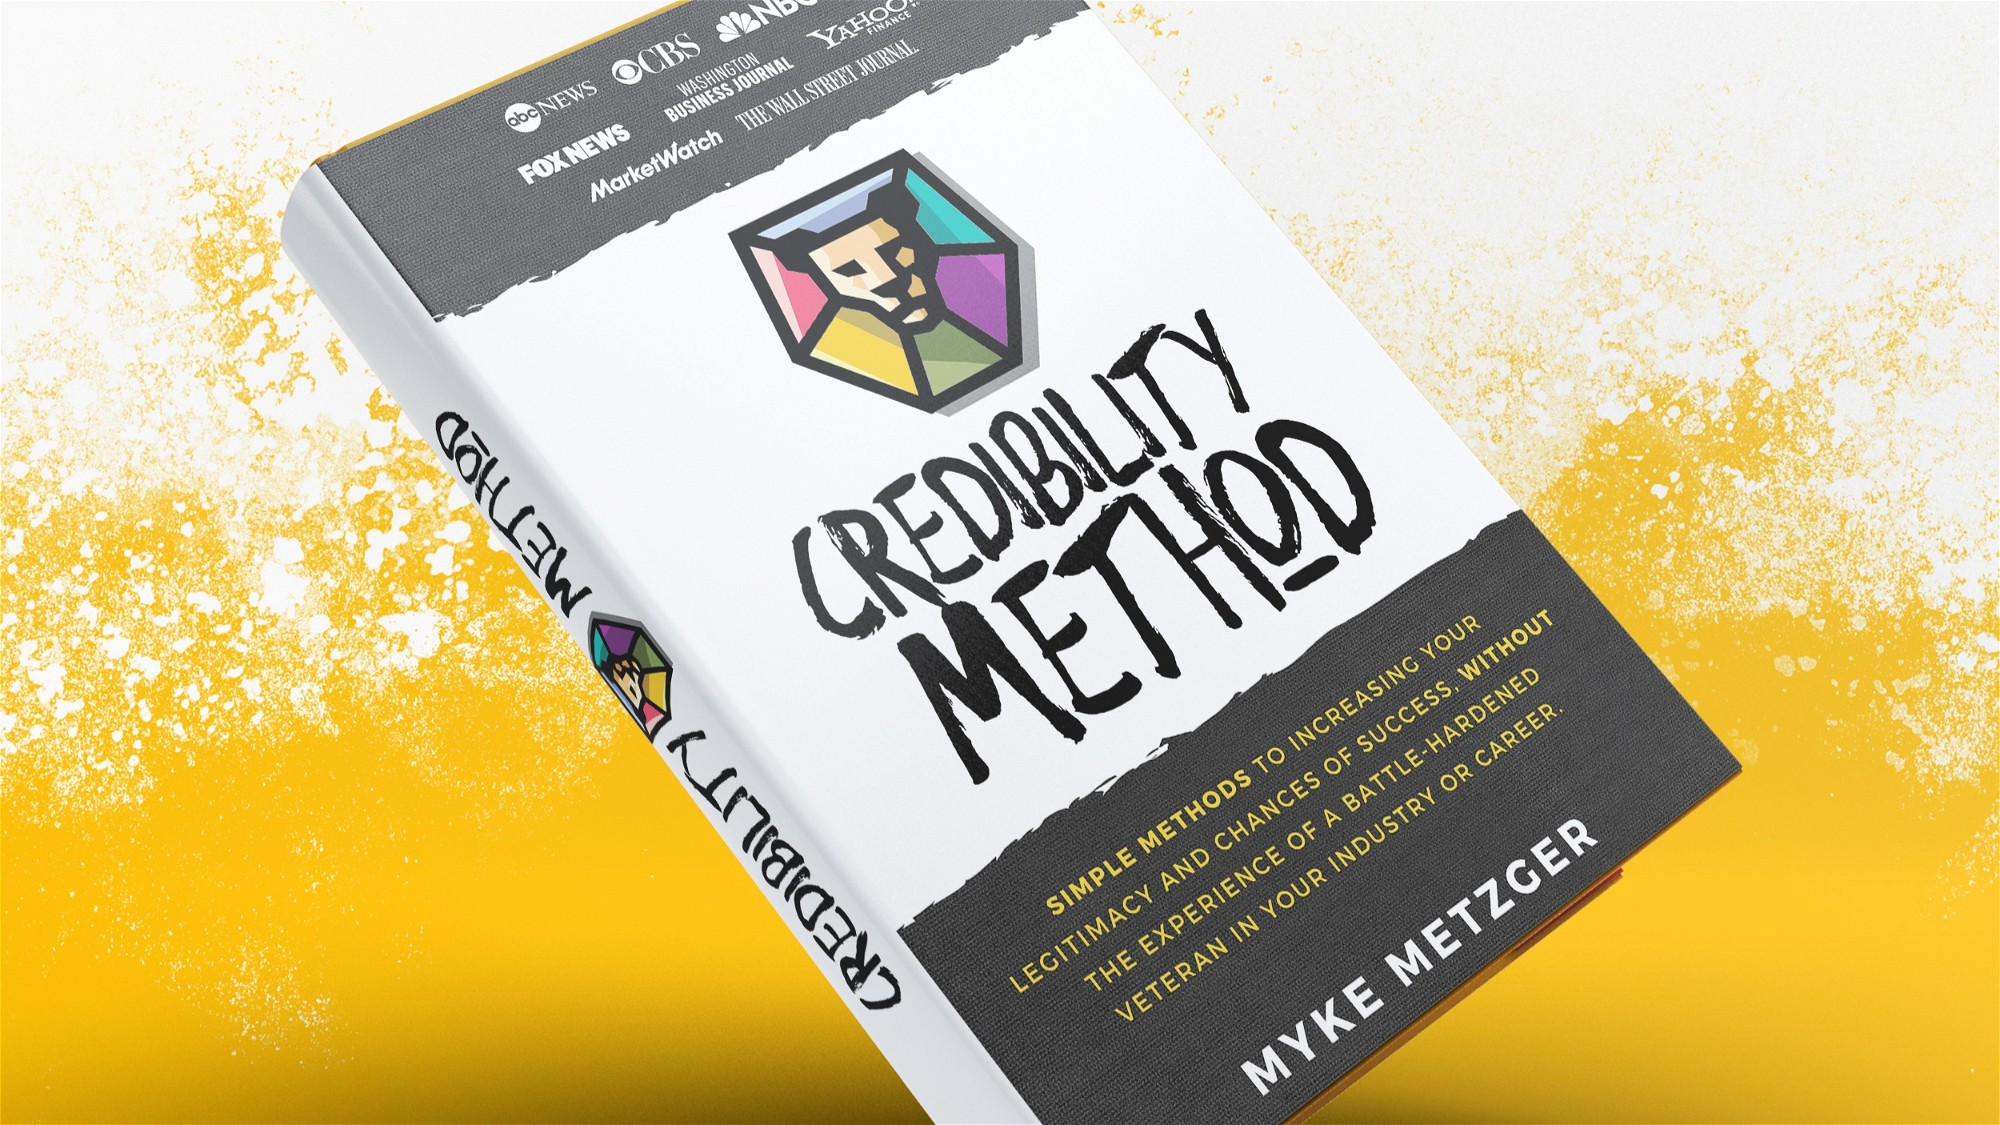 AppSumo Deal for Credibility Method: The Simple Method To Establishing Your Credibility & Increasing Your Legitimacy In Your Industry or Career